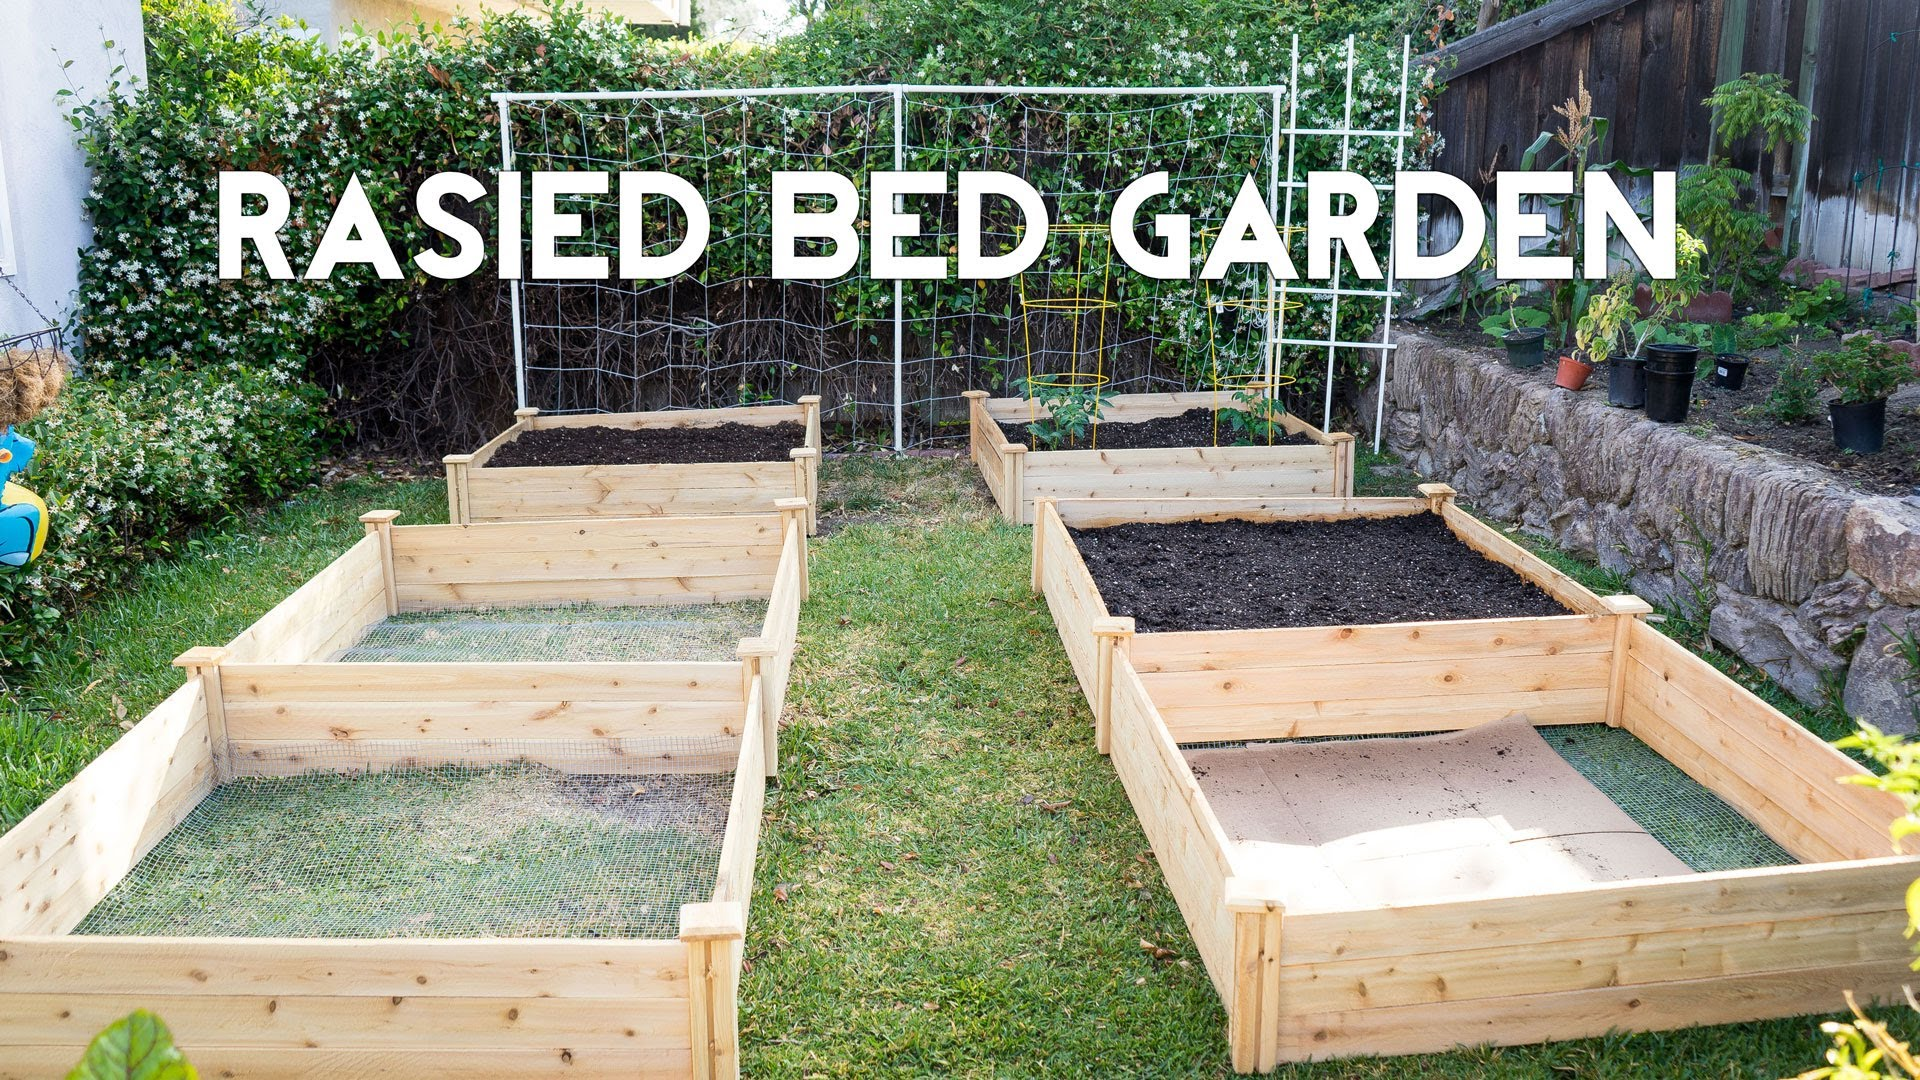 raised bed gardens raised bed gardening - how to start a garden with raised beds CQVNLIU